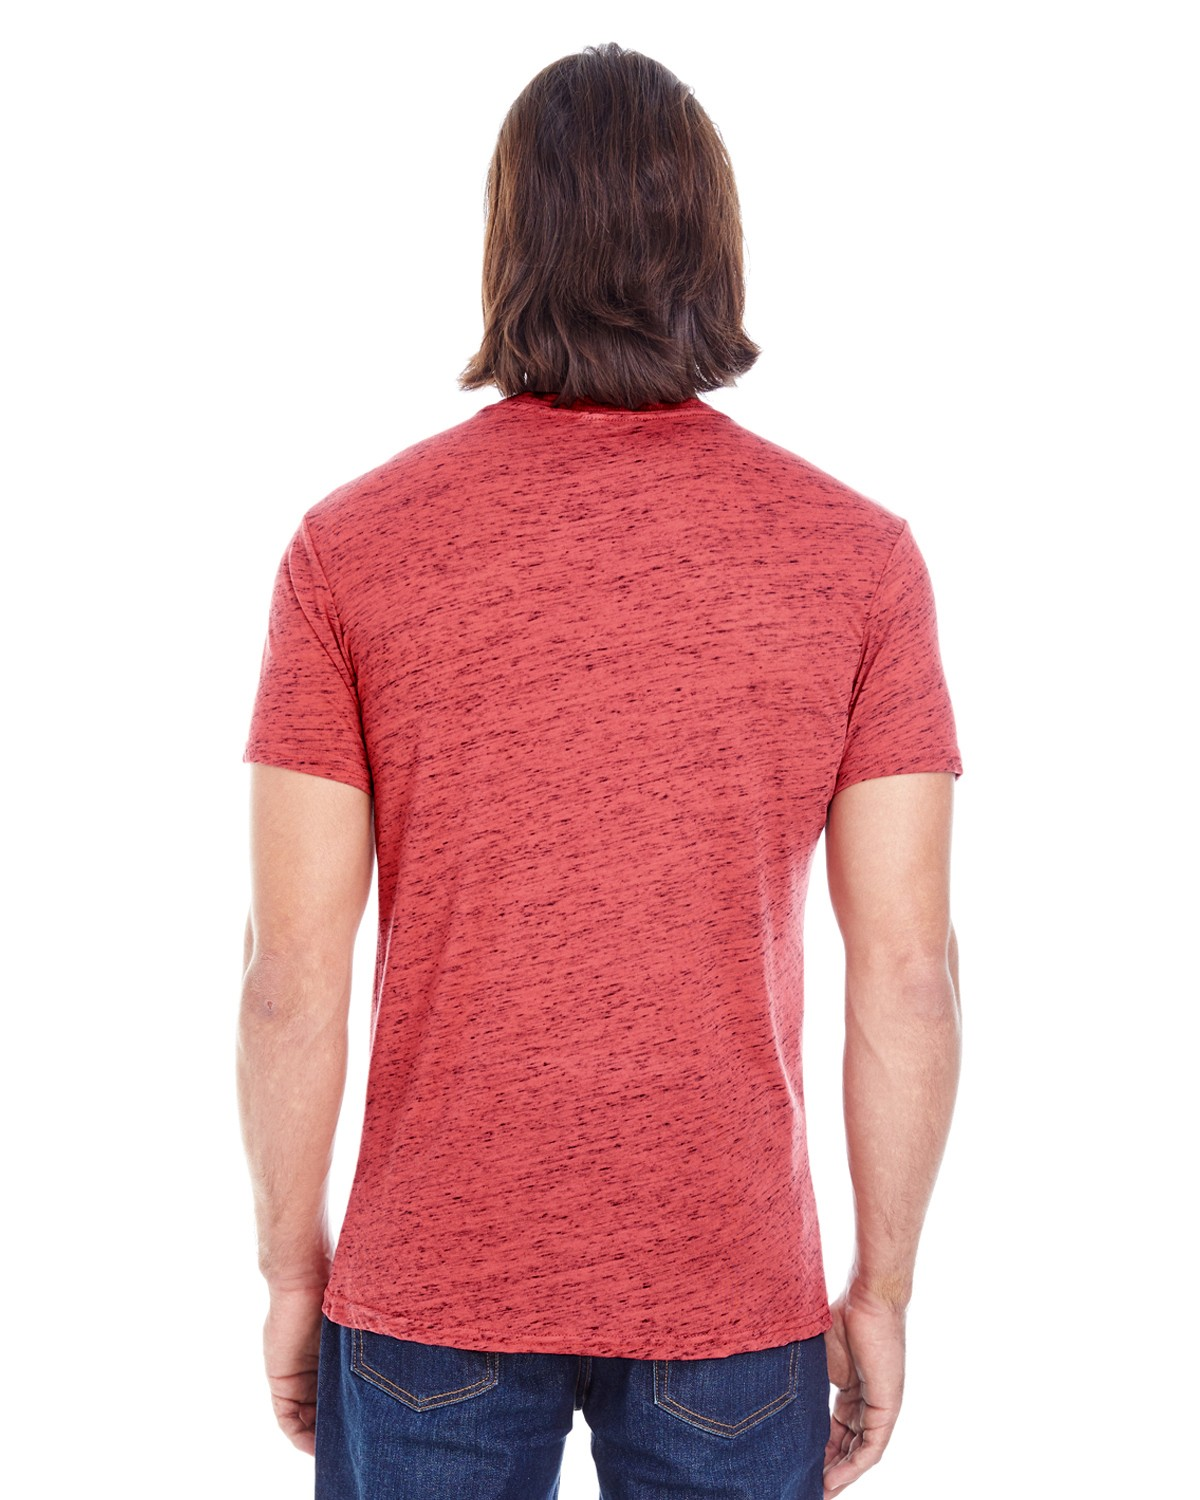 104A Threadfast Apparel RED BLIZZARD